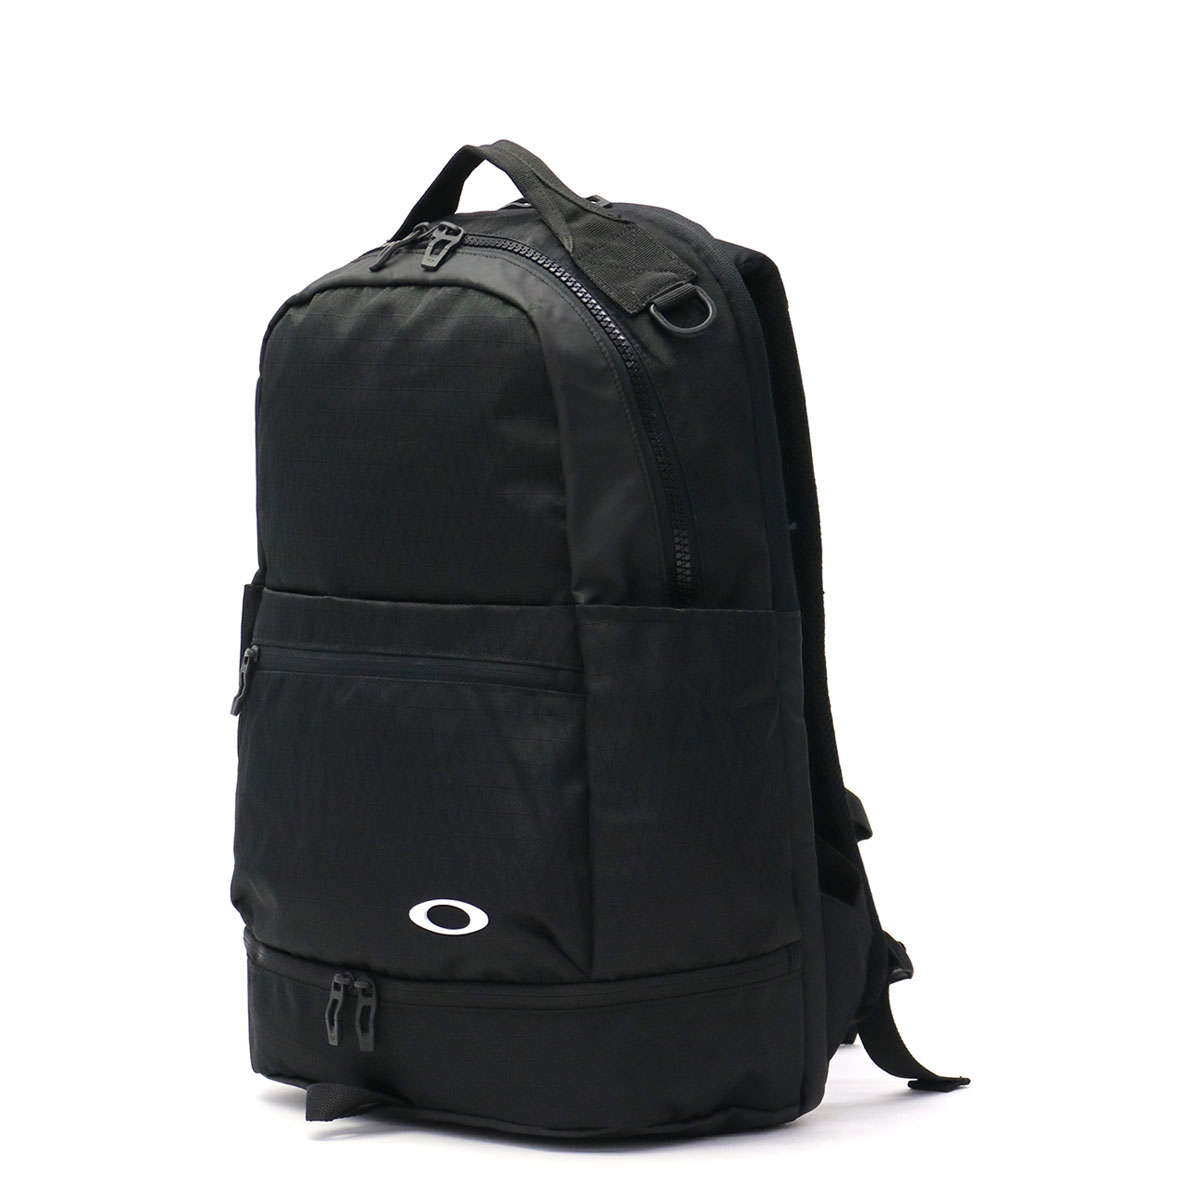 OAKLEY ESSENTIAL BACKPACK M 2.0 Square backpack men's ladies business  commuter visionary shoes storage PC storage 921384JP